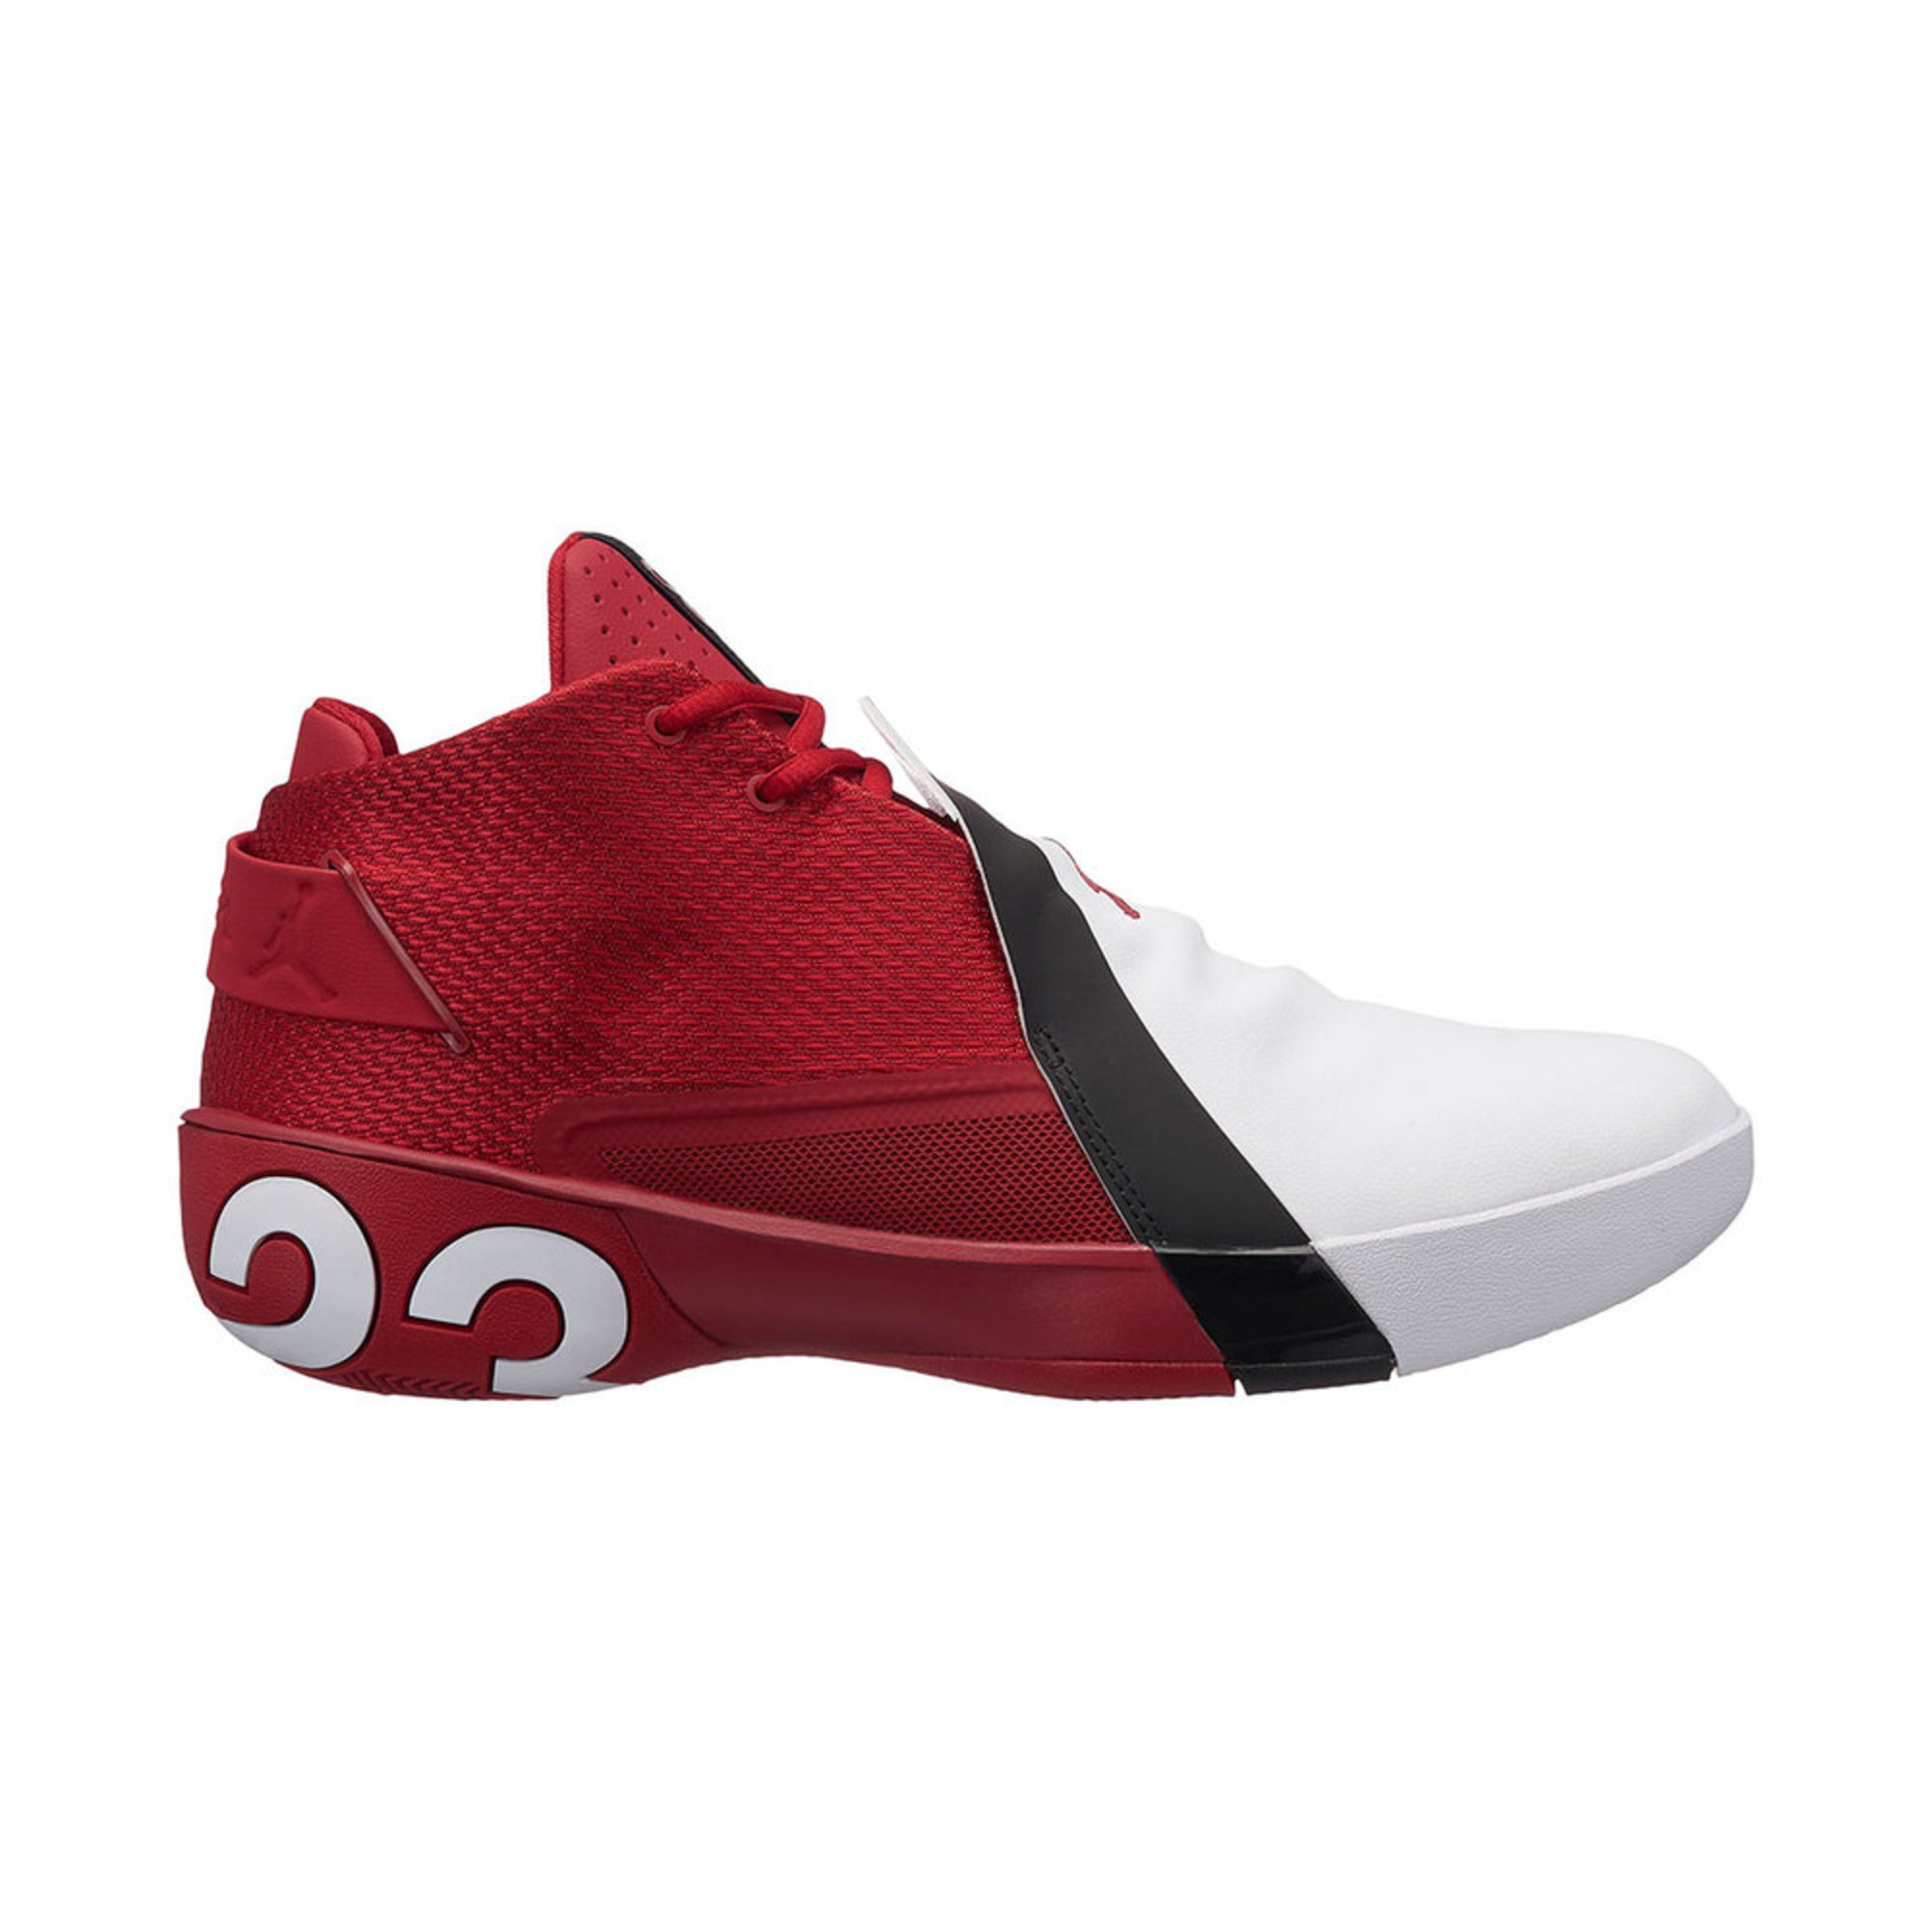 20d14bd9b Jordan. Jordan Men s Ultra Fly 3 Basketball Shoe